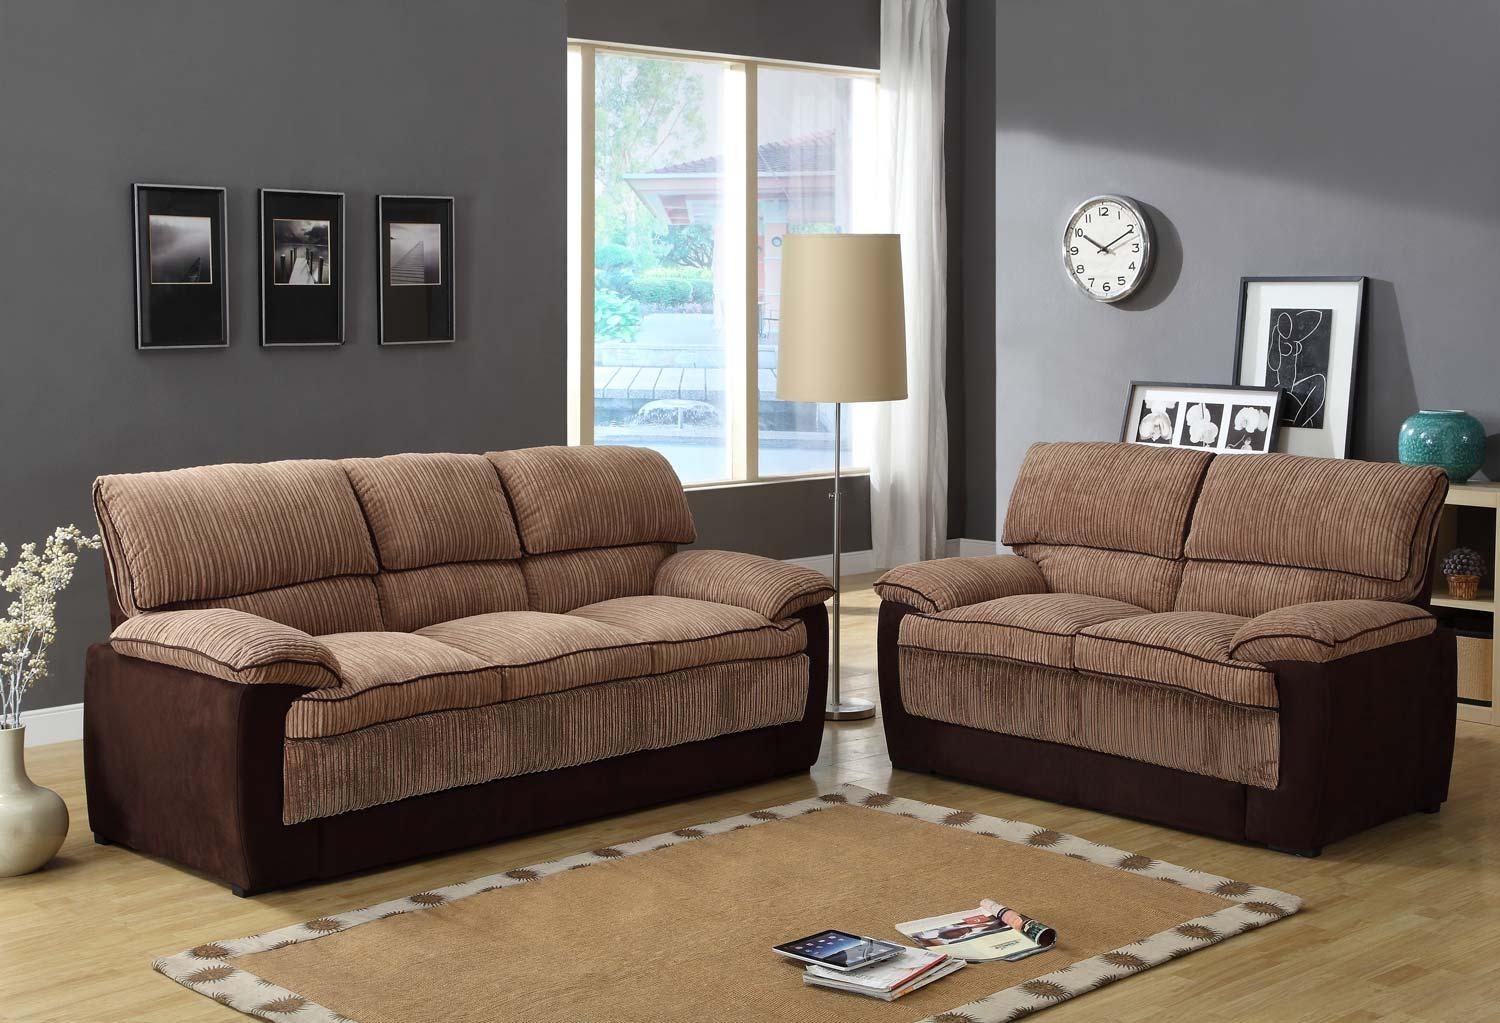 20 best collection of brown corduroy sofas sofa ideas for Brown corduroy couch